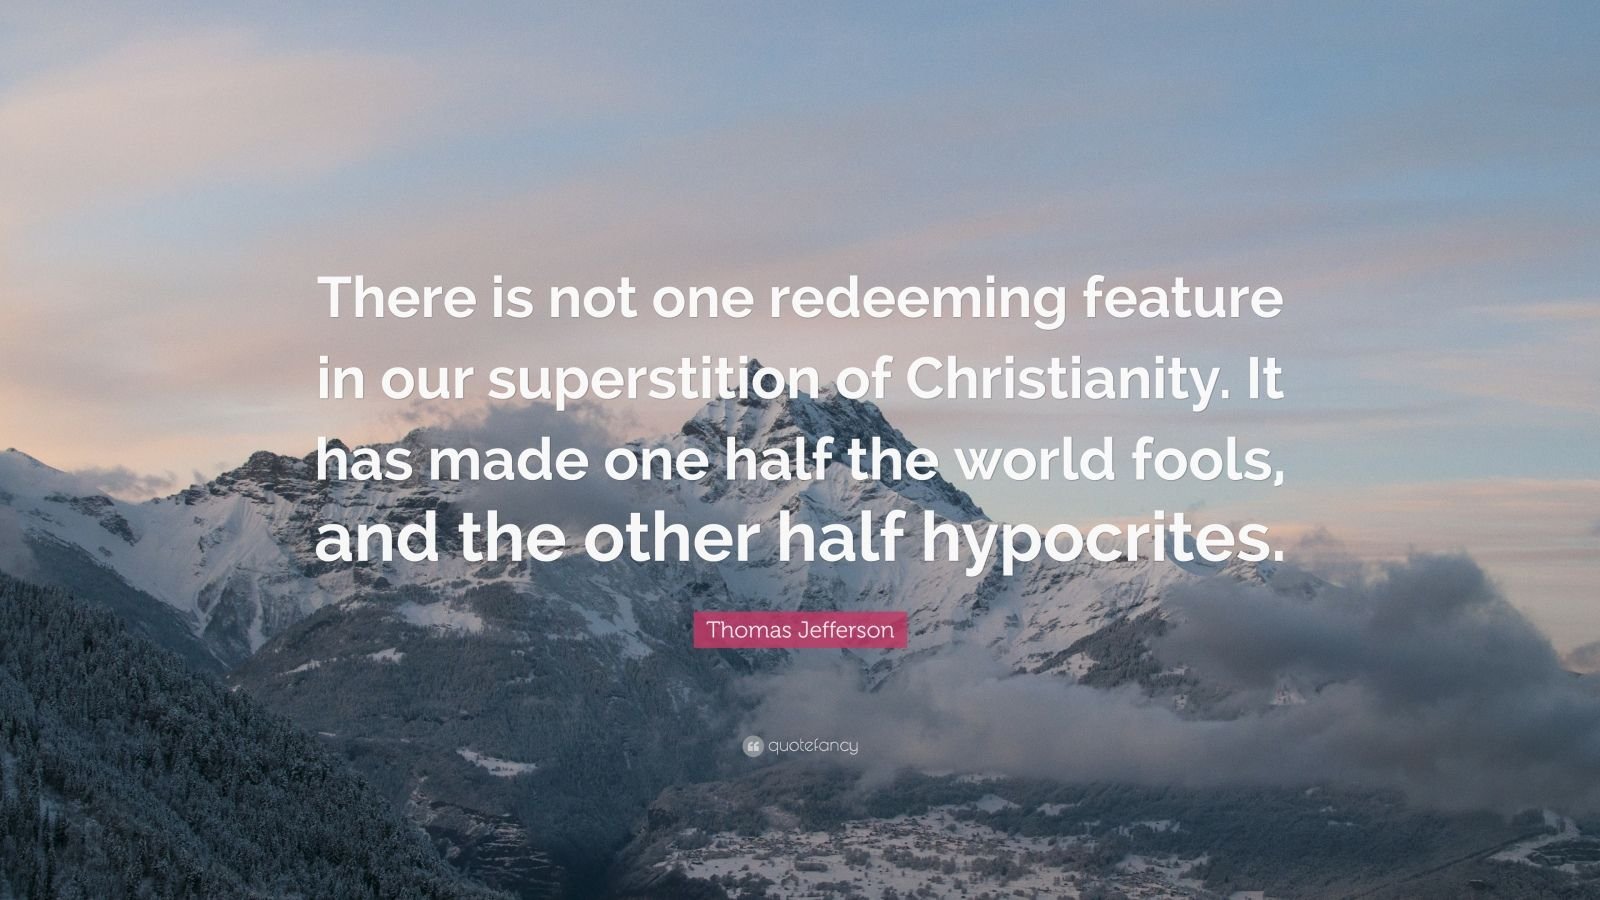 """Thomas Jefferson Quote: """"There is not one redeeming feature in our superstition of Christianity. It has made one half the world fools, and the other half hypocrites."""""""